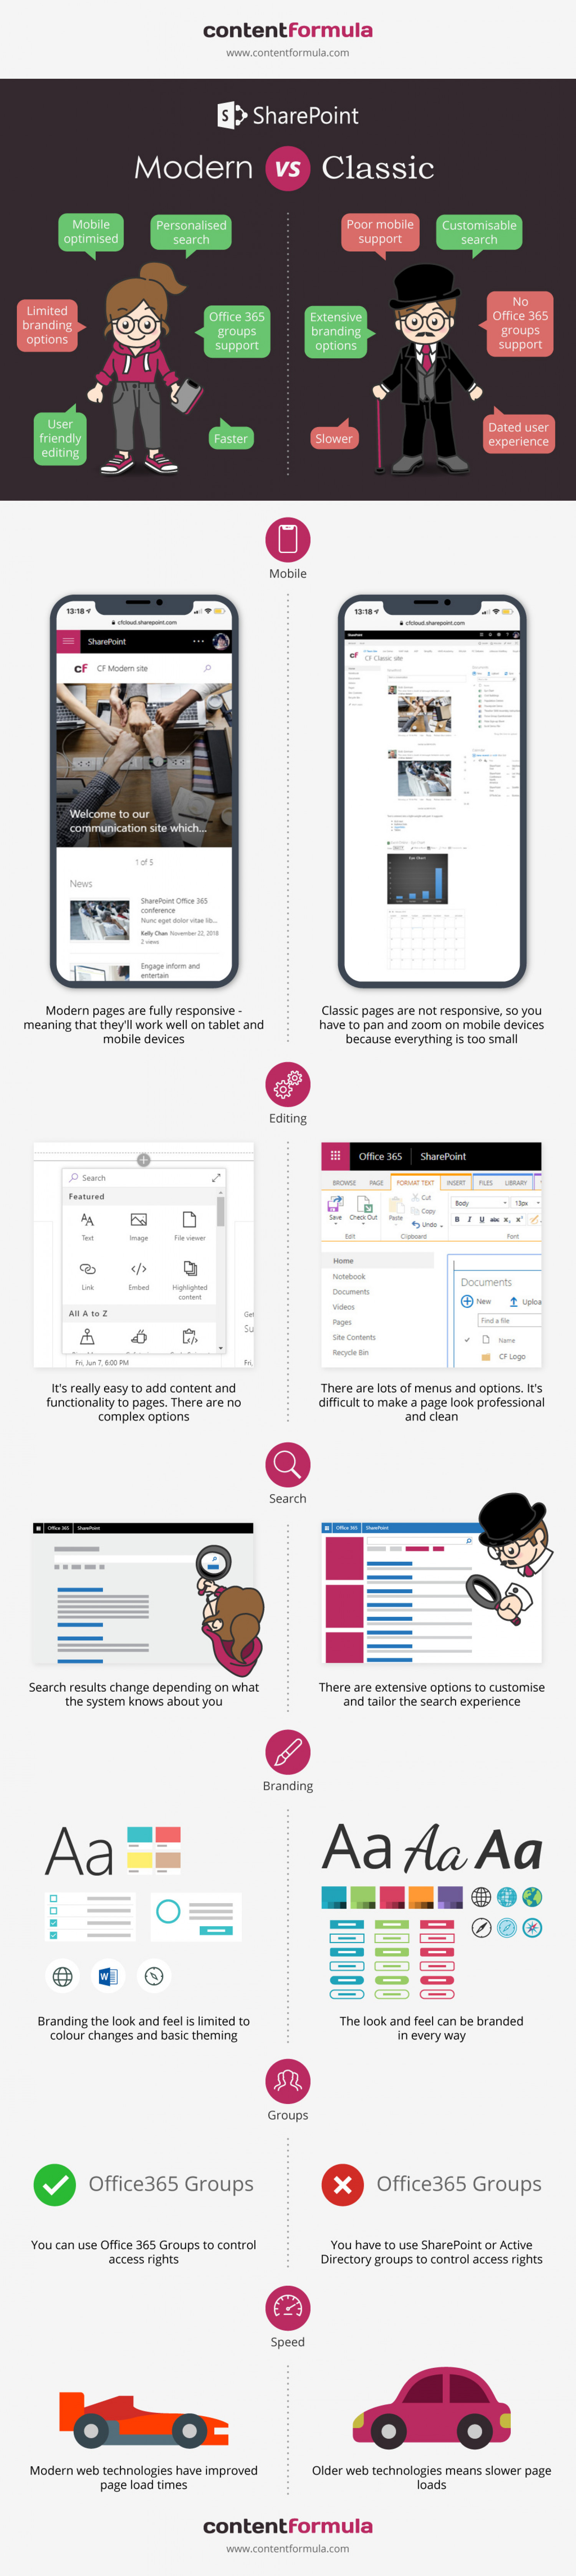 SharePoint Modern vs Classic inforgraphic  Infographic